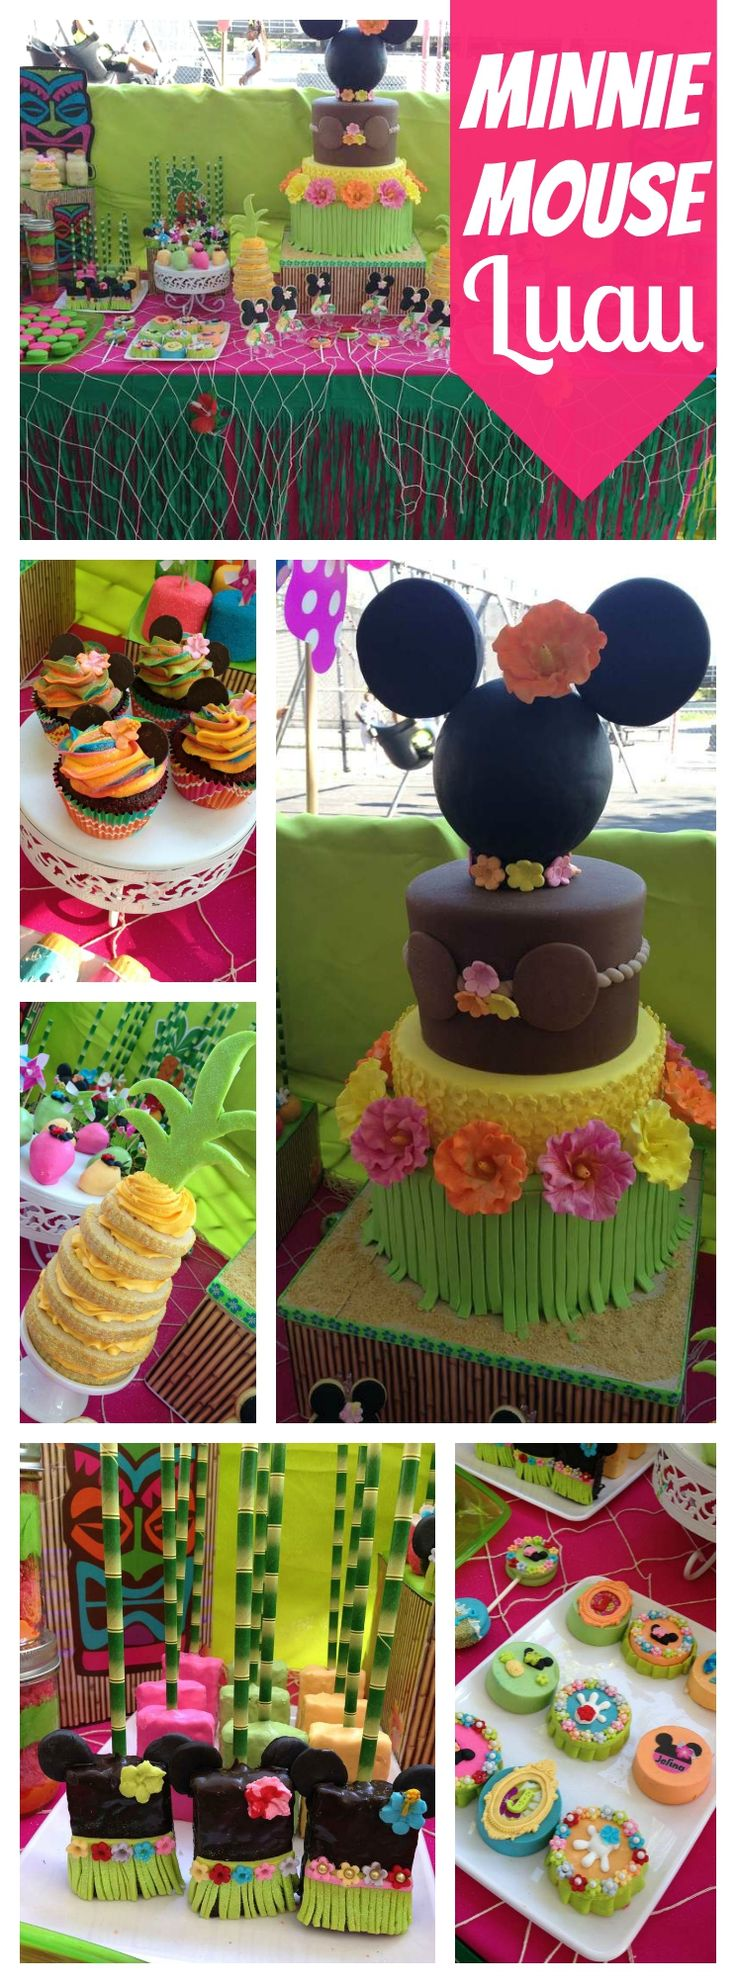 You won't believe this amazing Minnie Mouse luau party! See more party ideas at CatchMyParty.com!